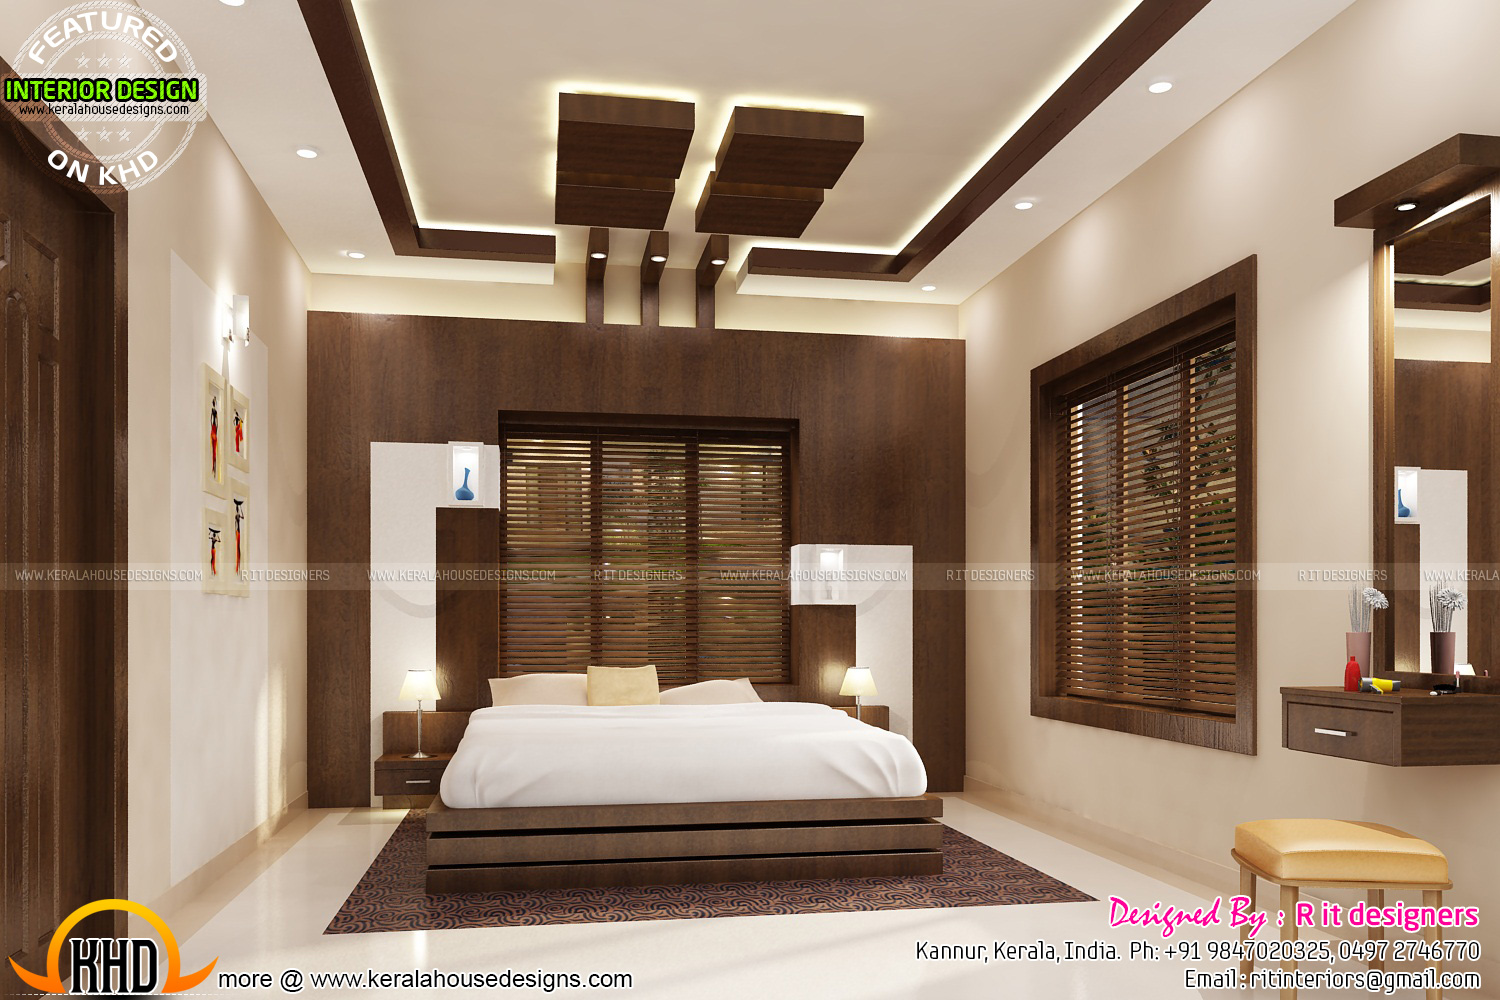 Bifurcated stair bedroom kitchen interiors kerala home for Interior designs in kerala